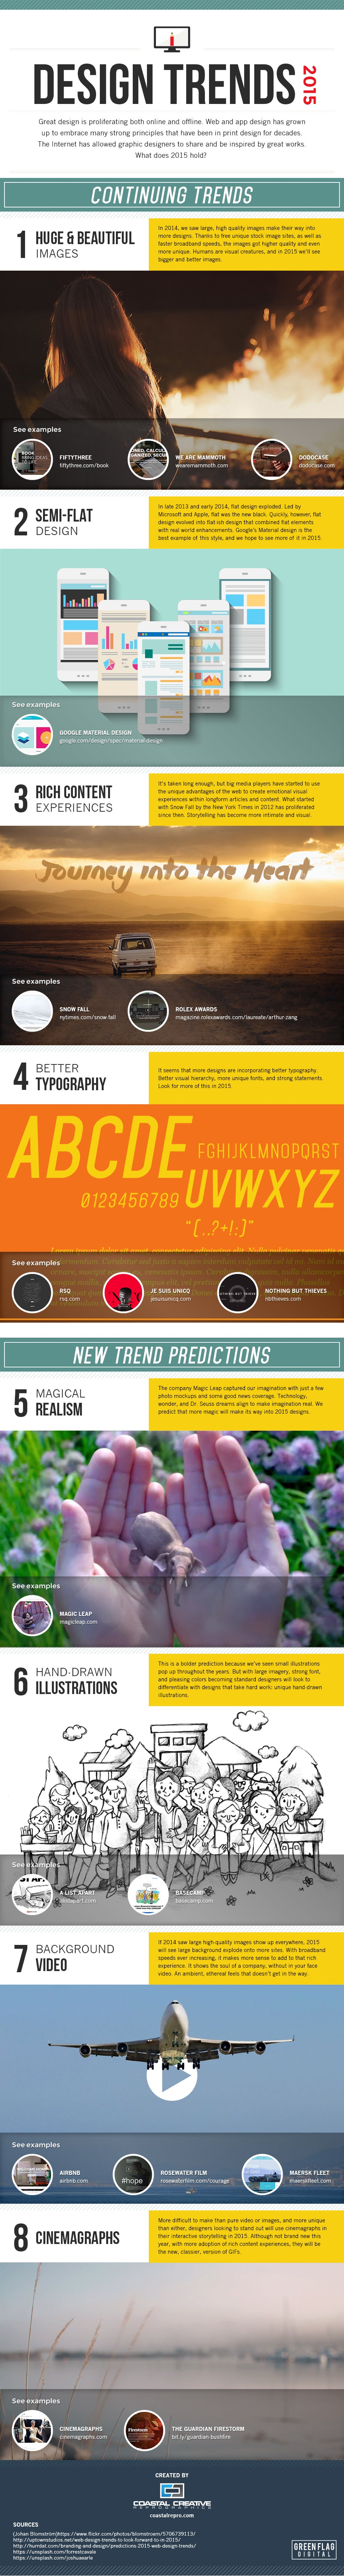 Need a New Website or Logo? Design Trends for 2015. (Infographic)